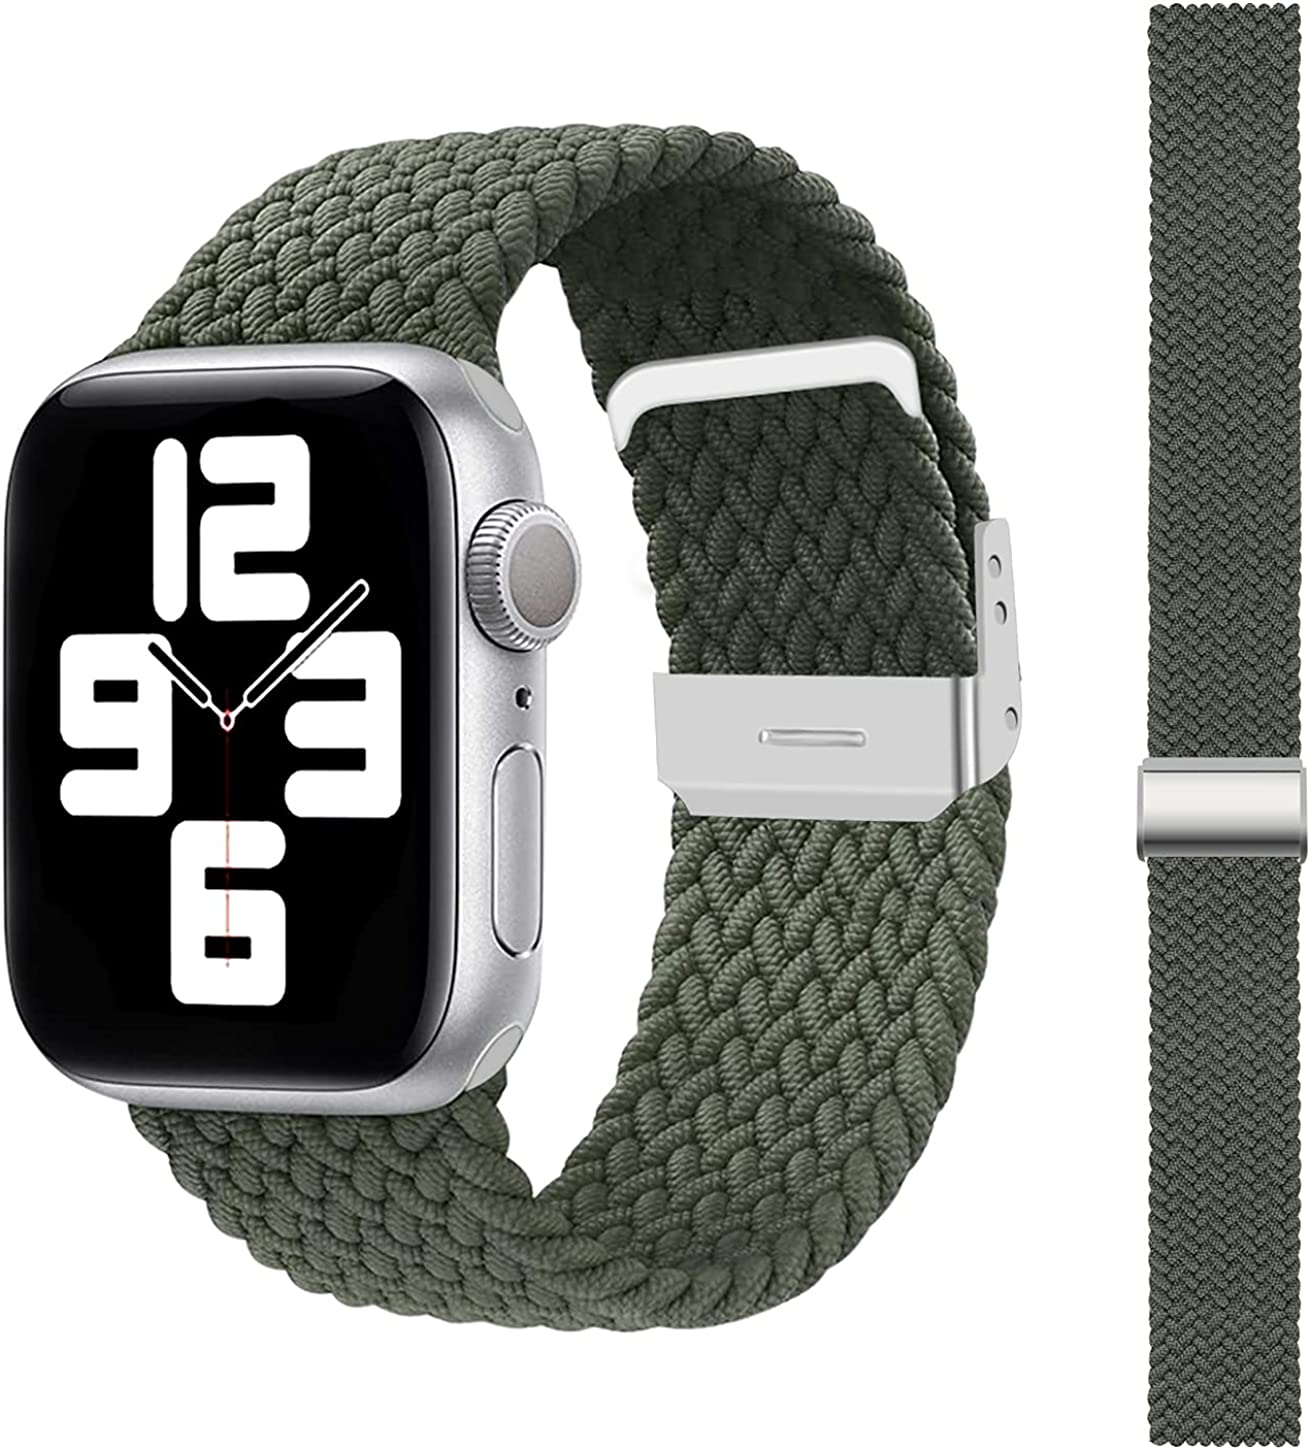 SEMKONT Compatible with Apple Watch Band 38mm 40mm 42mm 44mm, Stretchy Elastic Nylon Adjustable Replacement Watch Strap, Compatible for Apple Watch Series SE/6/5/4/3/2/1